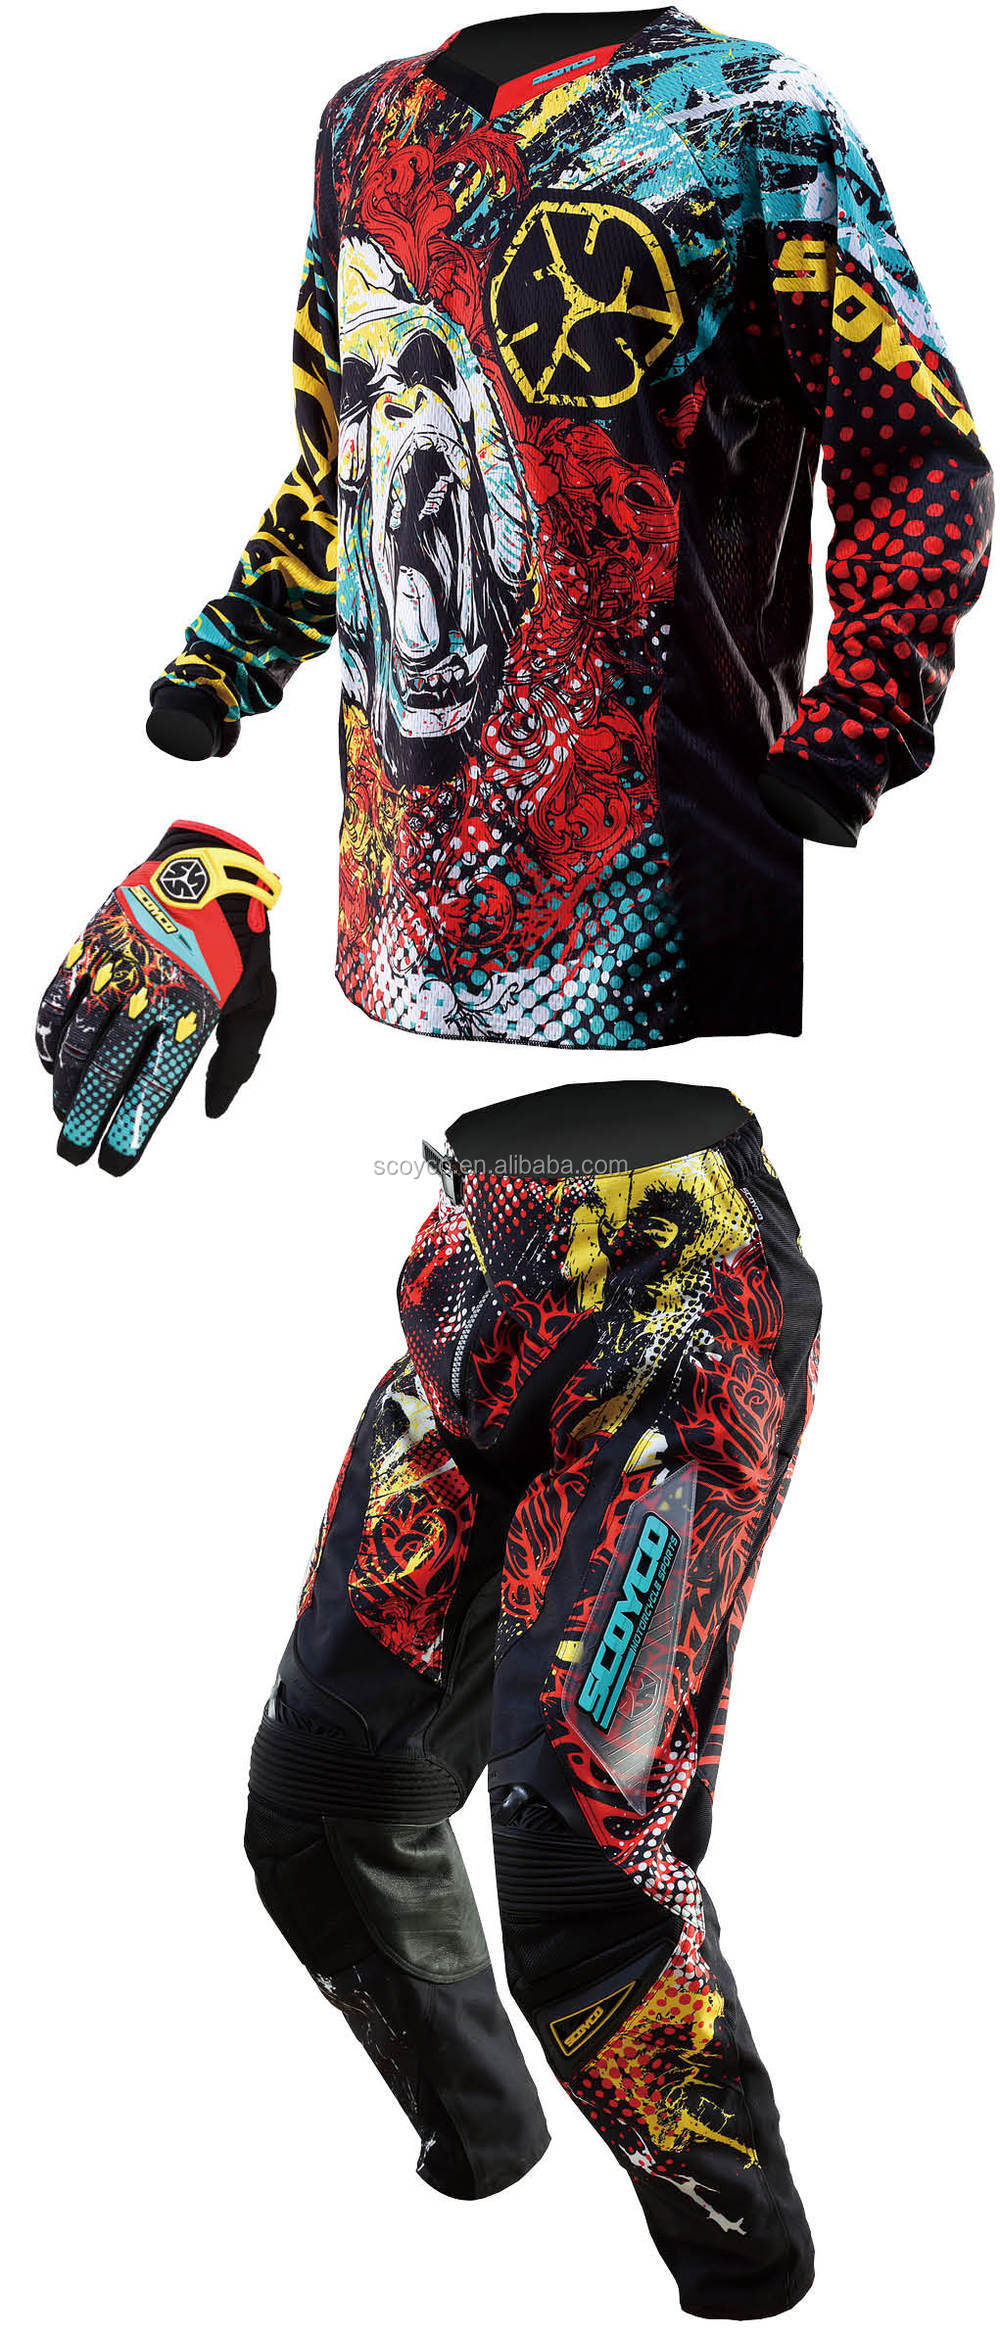 Motorcross Sports Jersey T119 Offroad Racing Competition MX Team Design